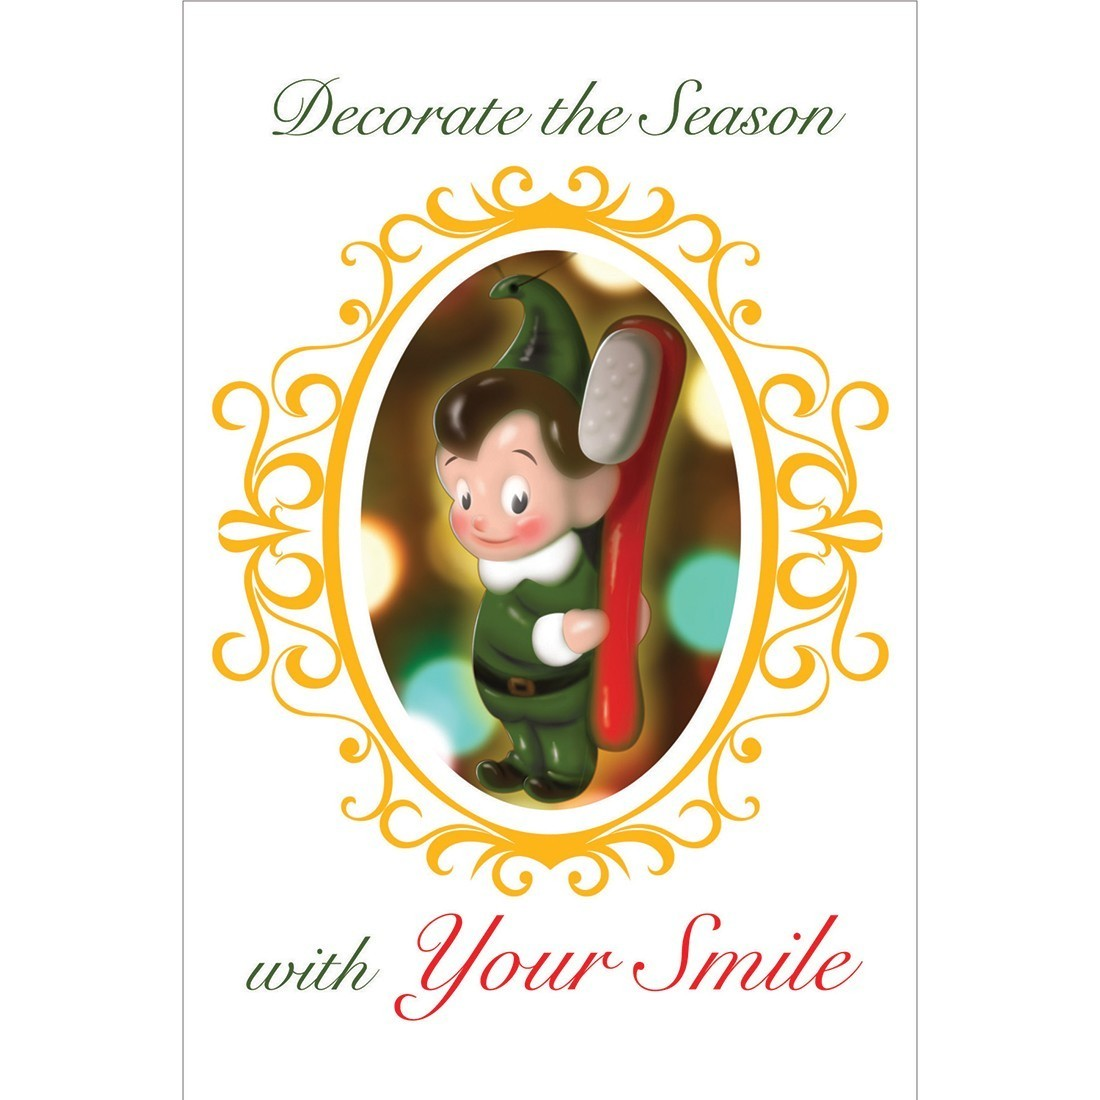 Decorate the Season Greeting Cards [image]